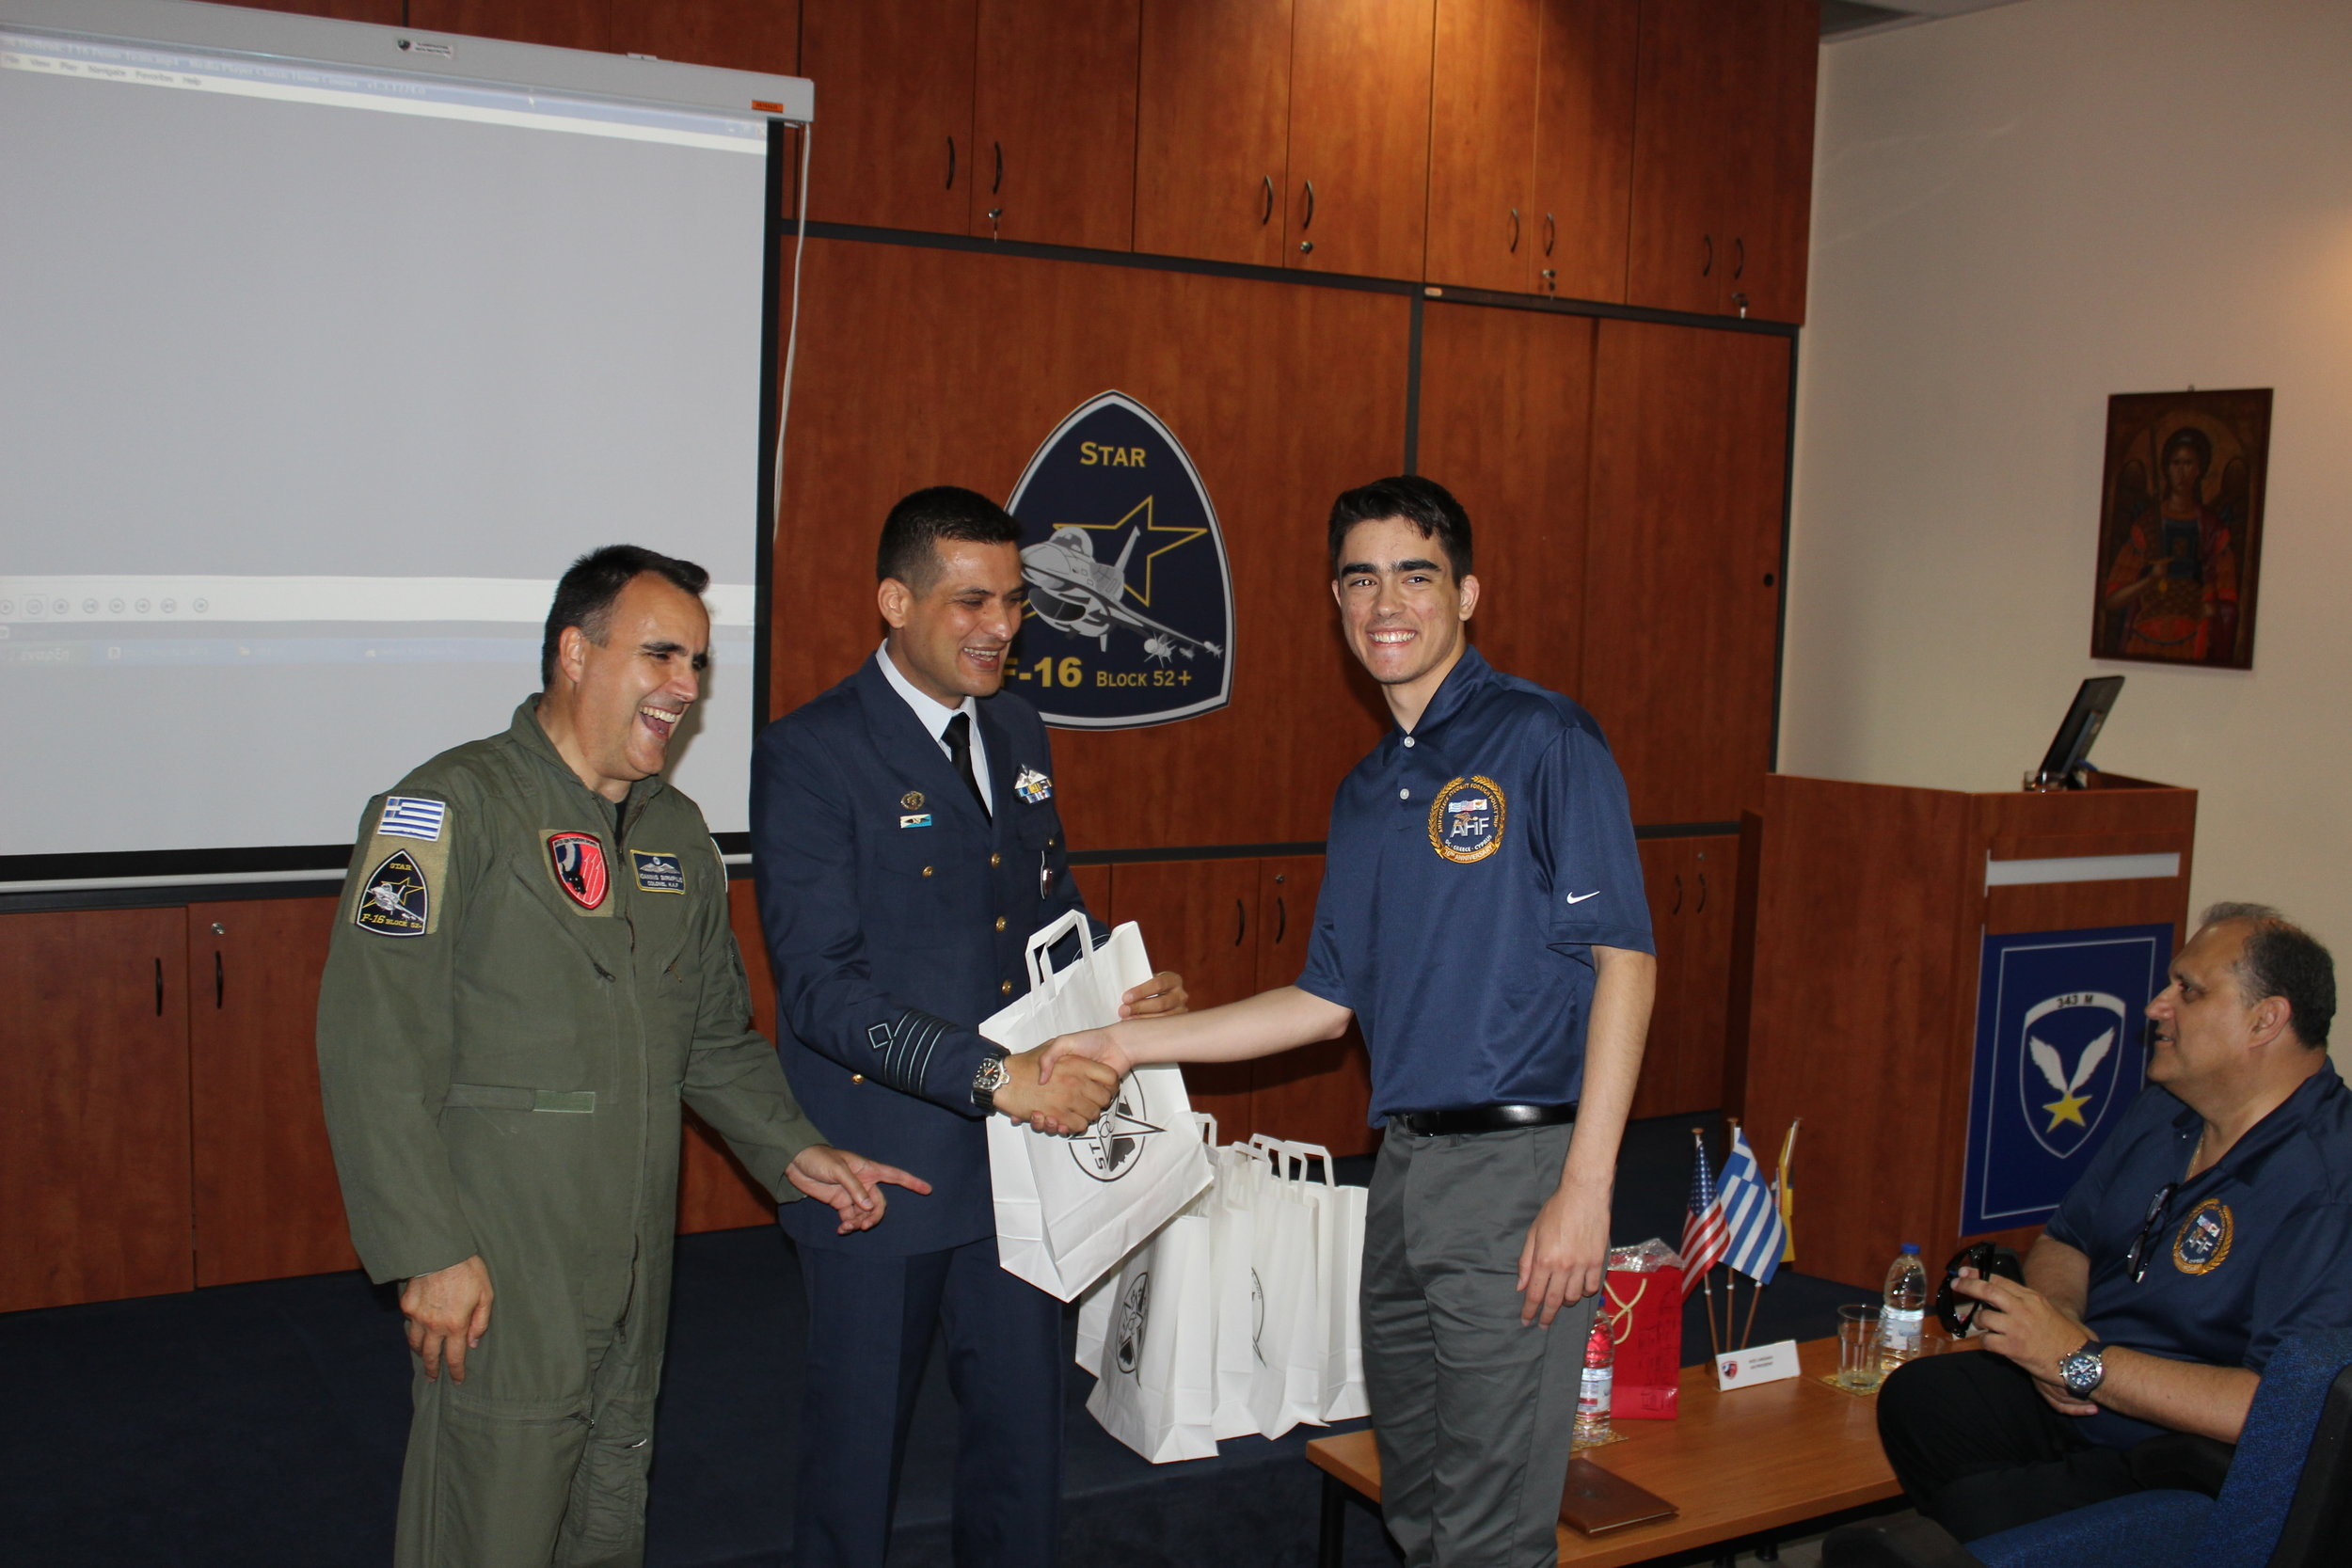 Colonel Ioannis Birbillis (left), commander of the 115th Combat Wing presents the students with gifts.